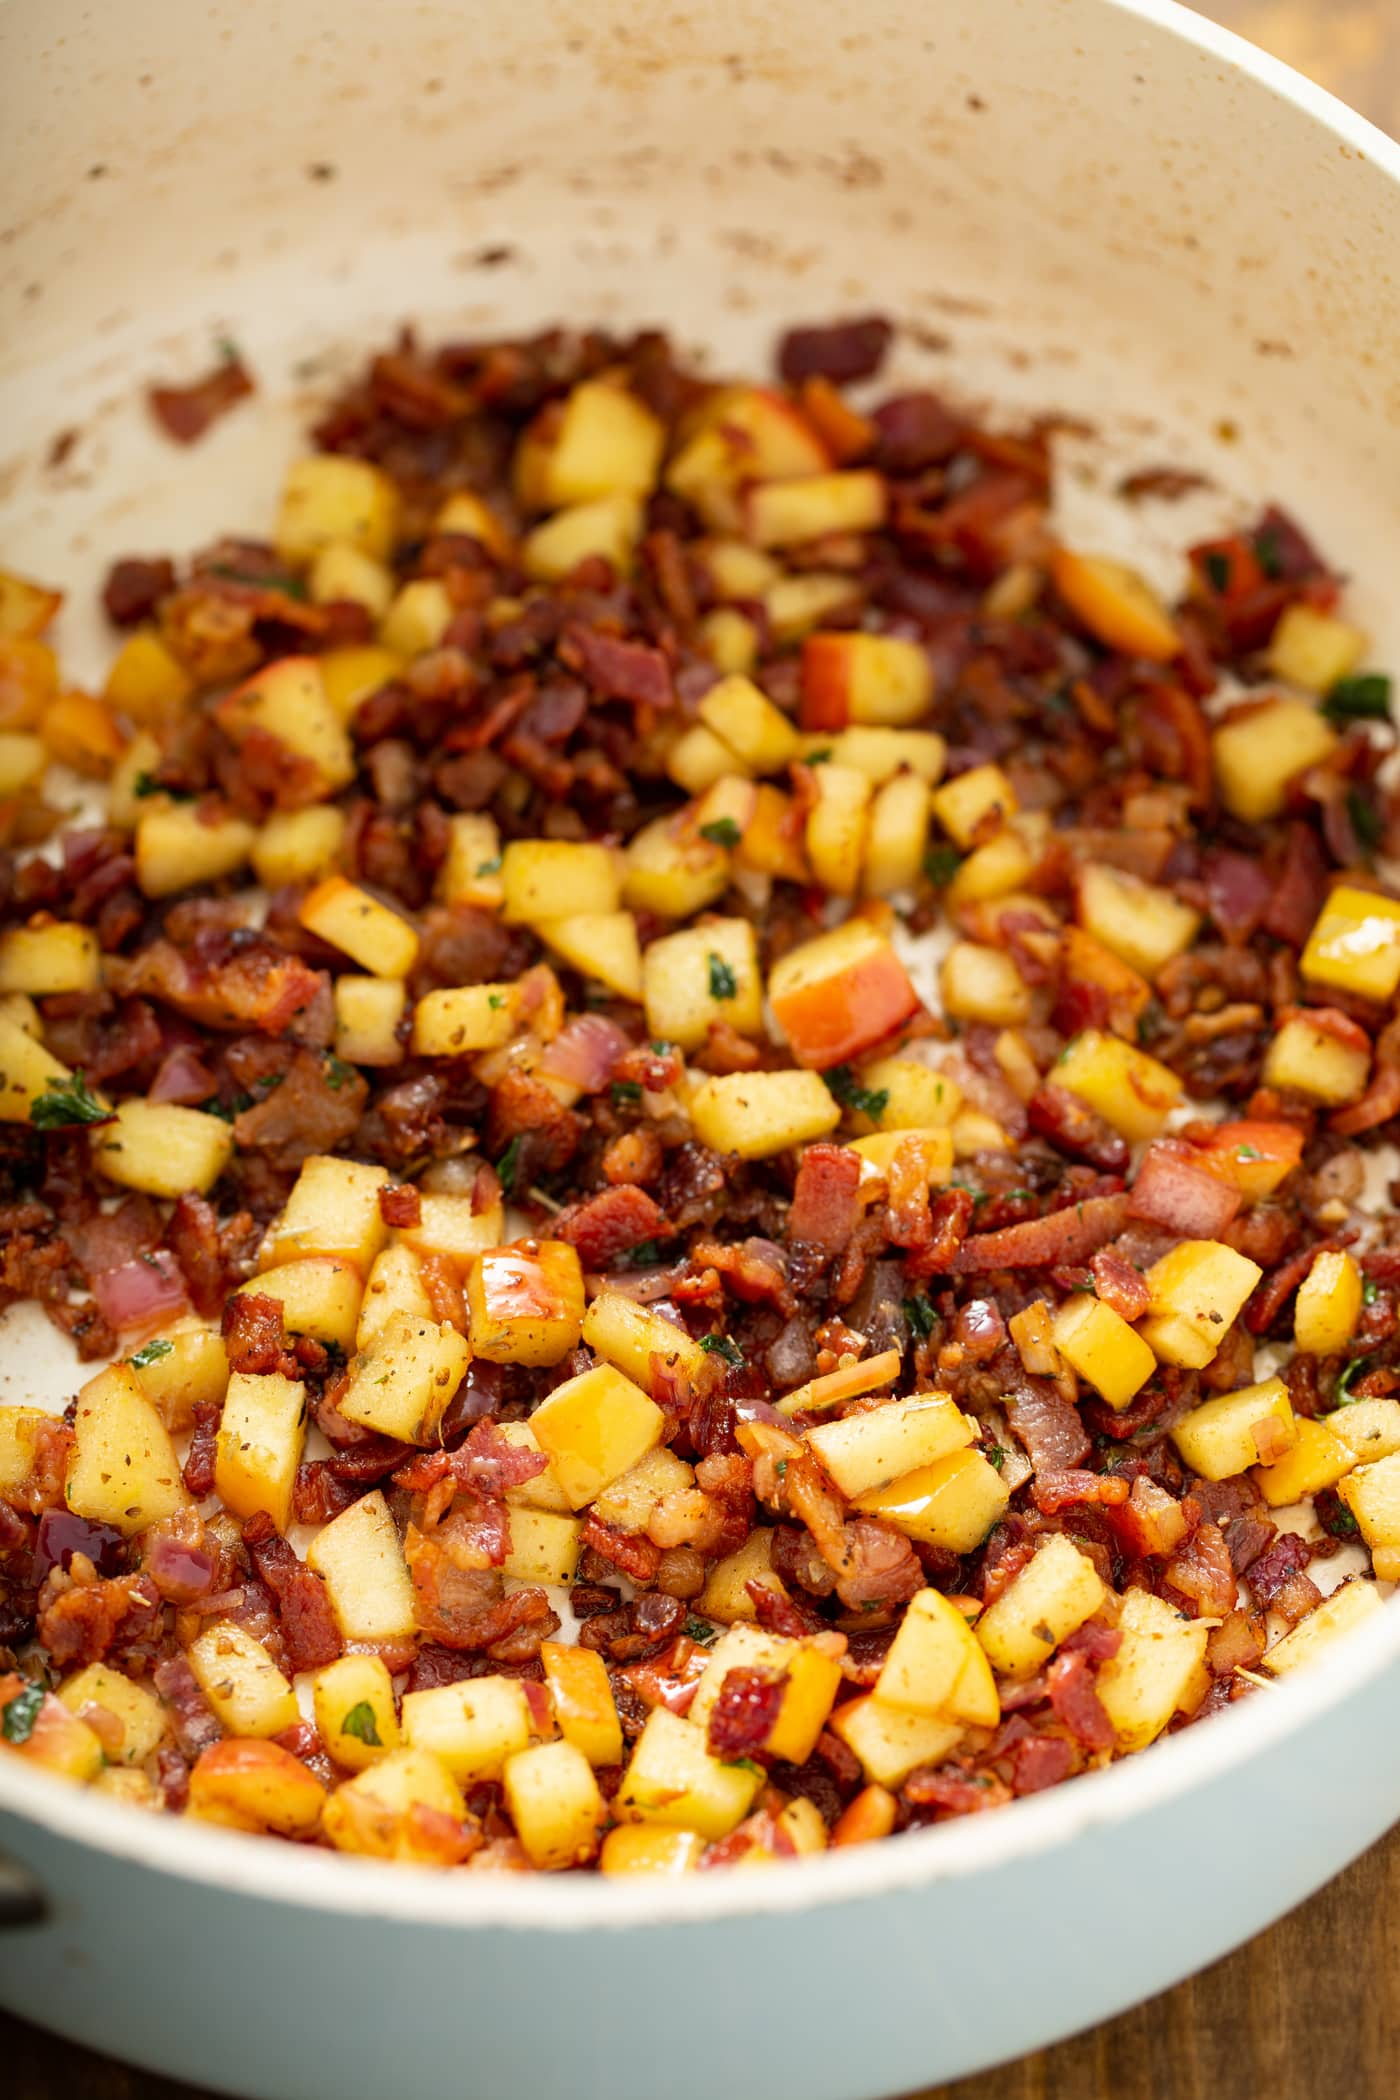 A skillet filled with cooked bacon, apples, onions, spices,and herbs.